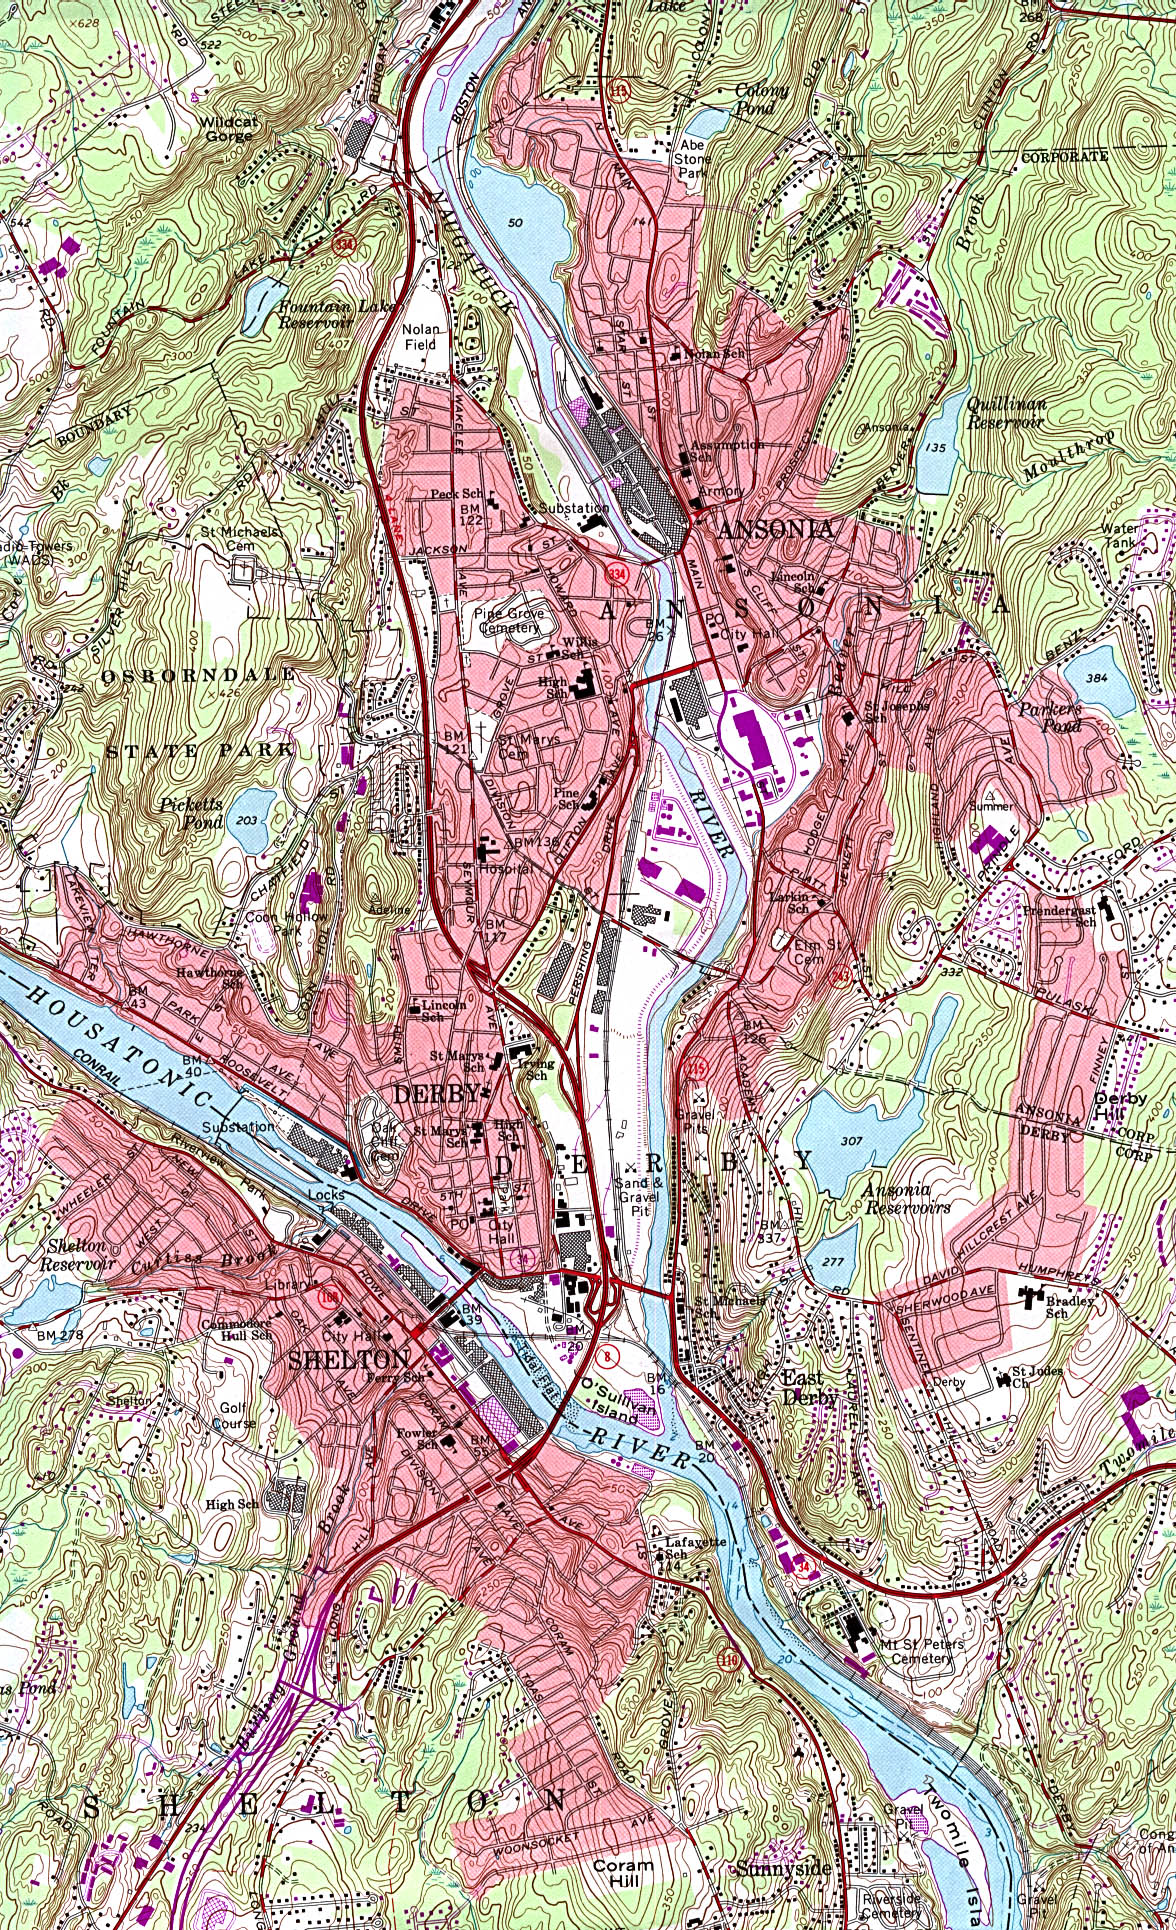 Ansonia, Derby, Shelton Topographic City Map, Connecticut, United States